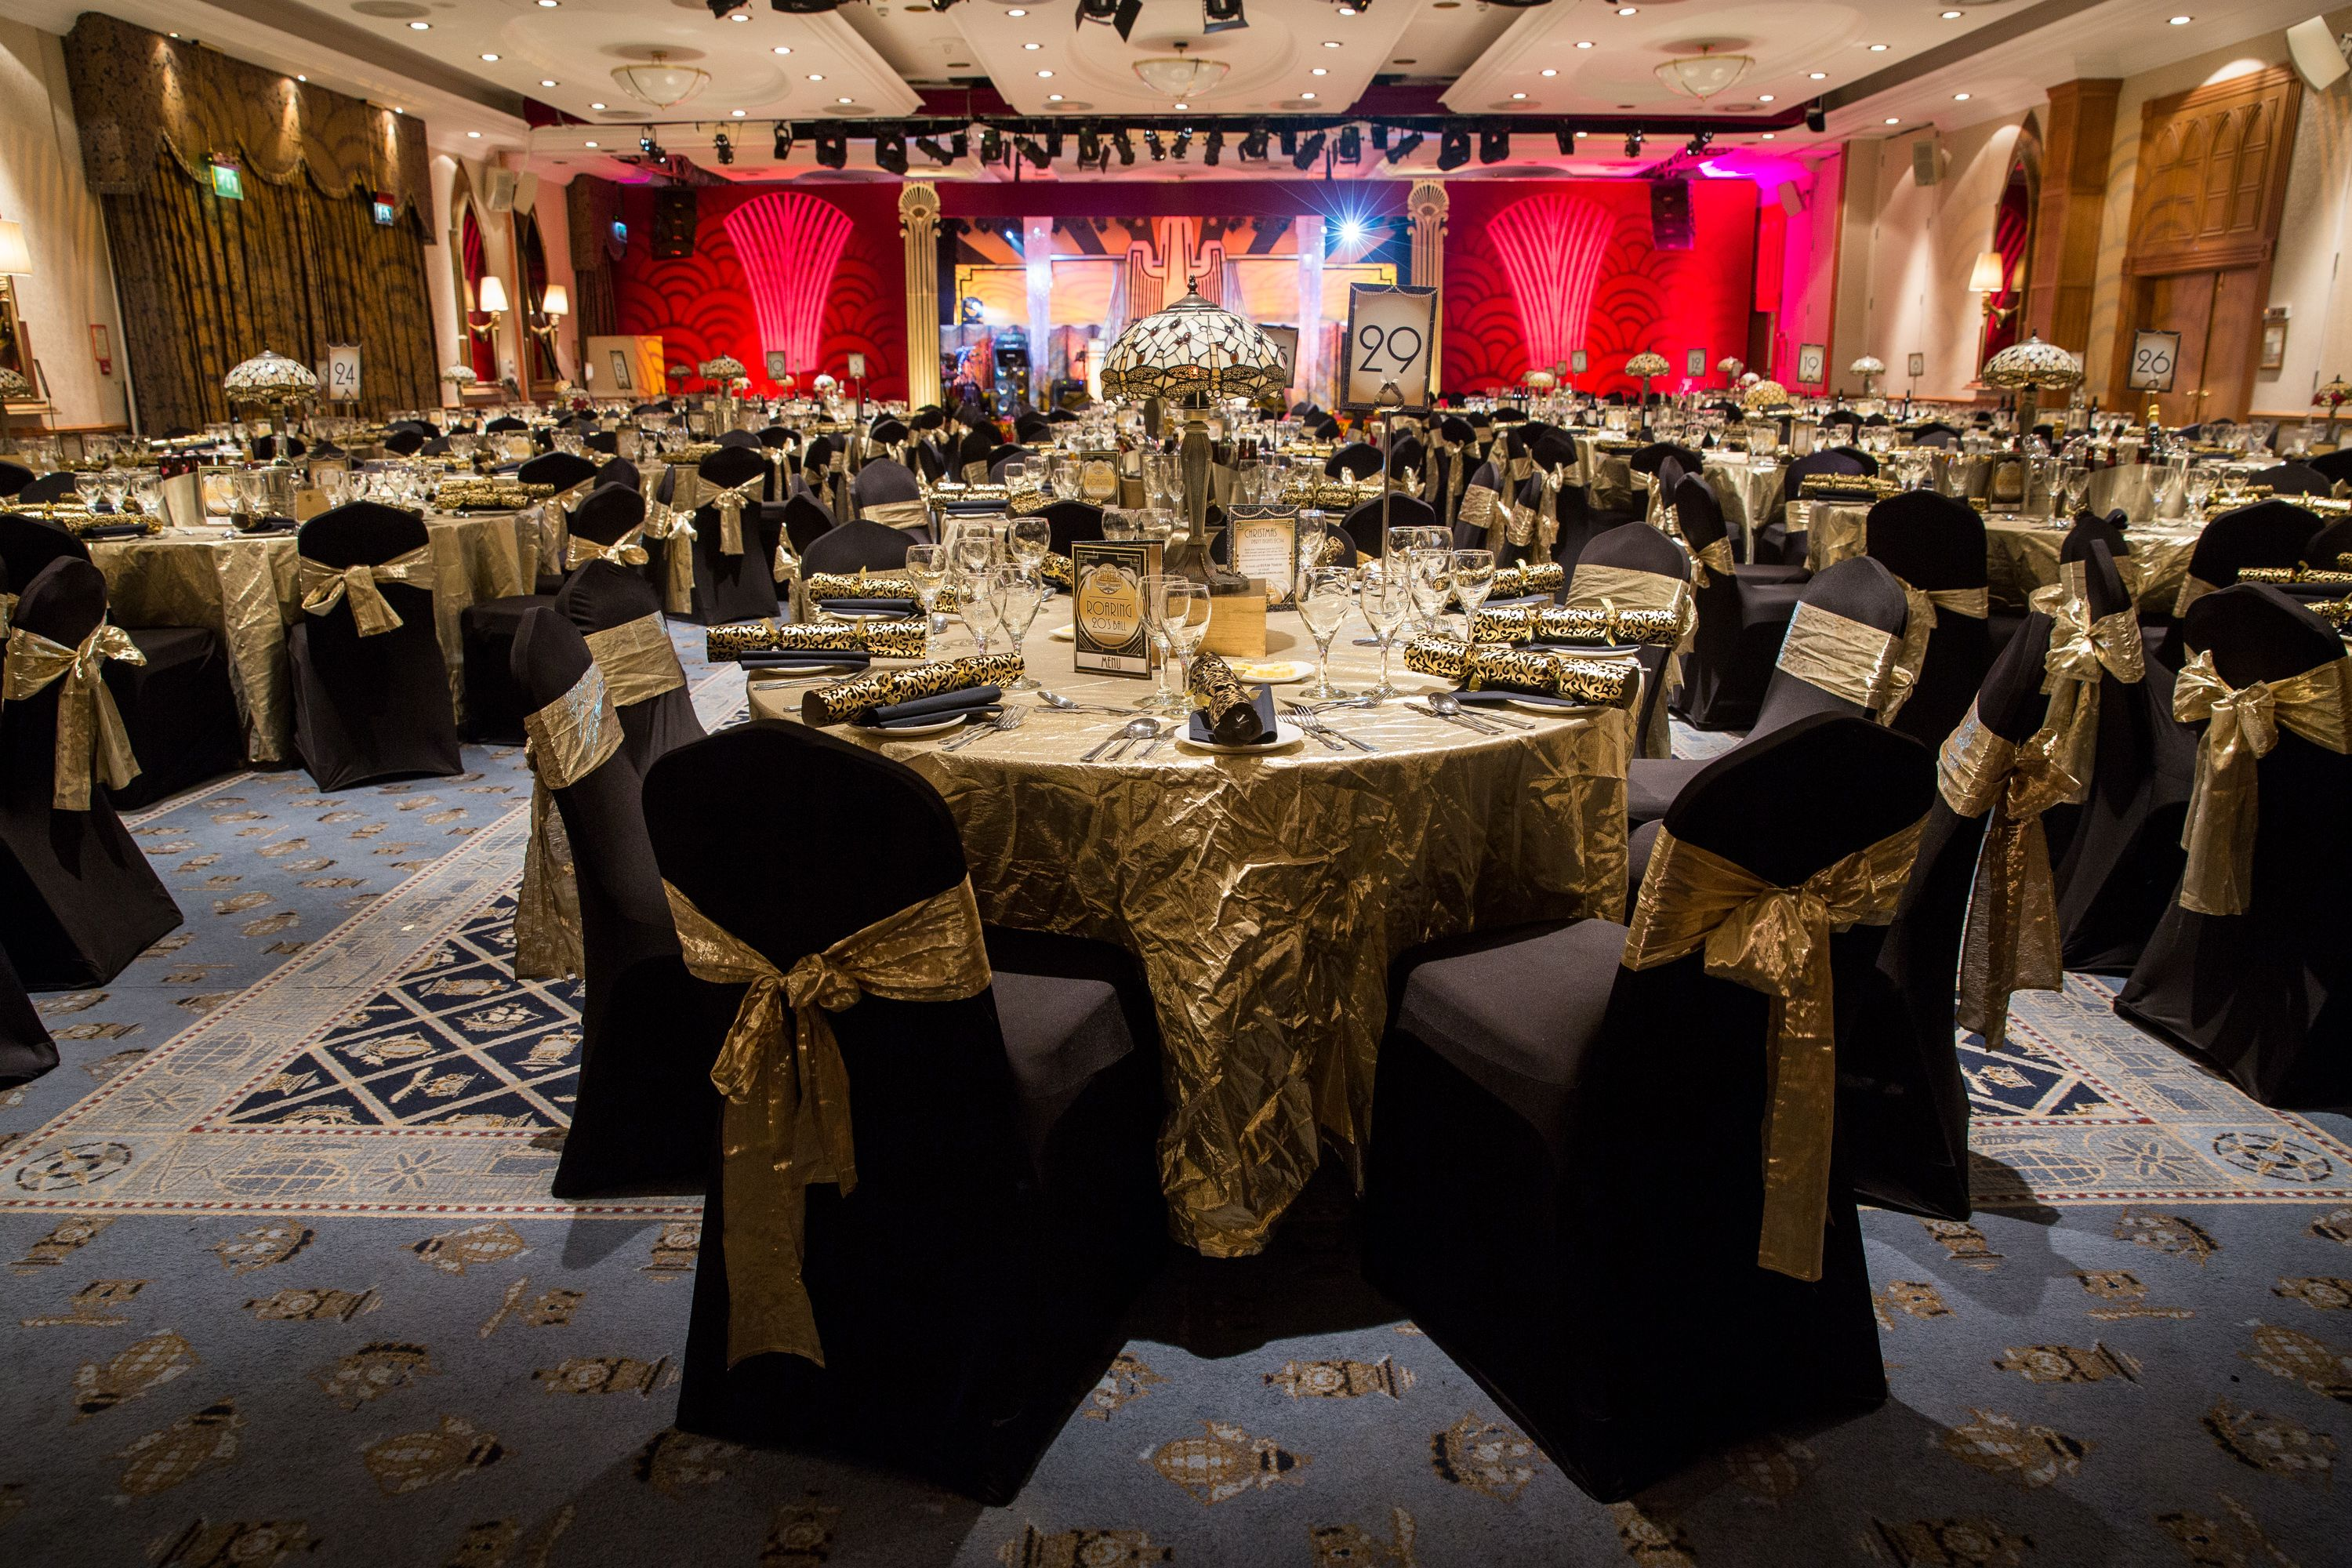 1920 Decor Alton Towers Resort Is Offering Christmas Parties With A 1920s Theme Corporate Christmas Parties Christmas Party Themes Corporate Holiday Party